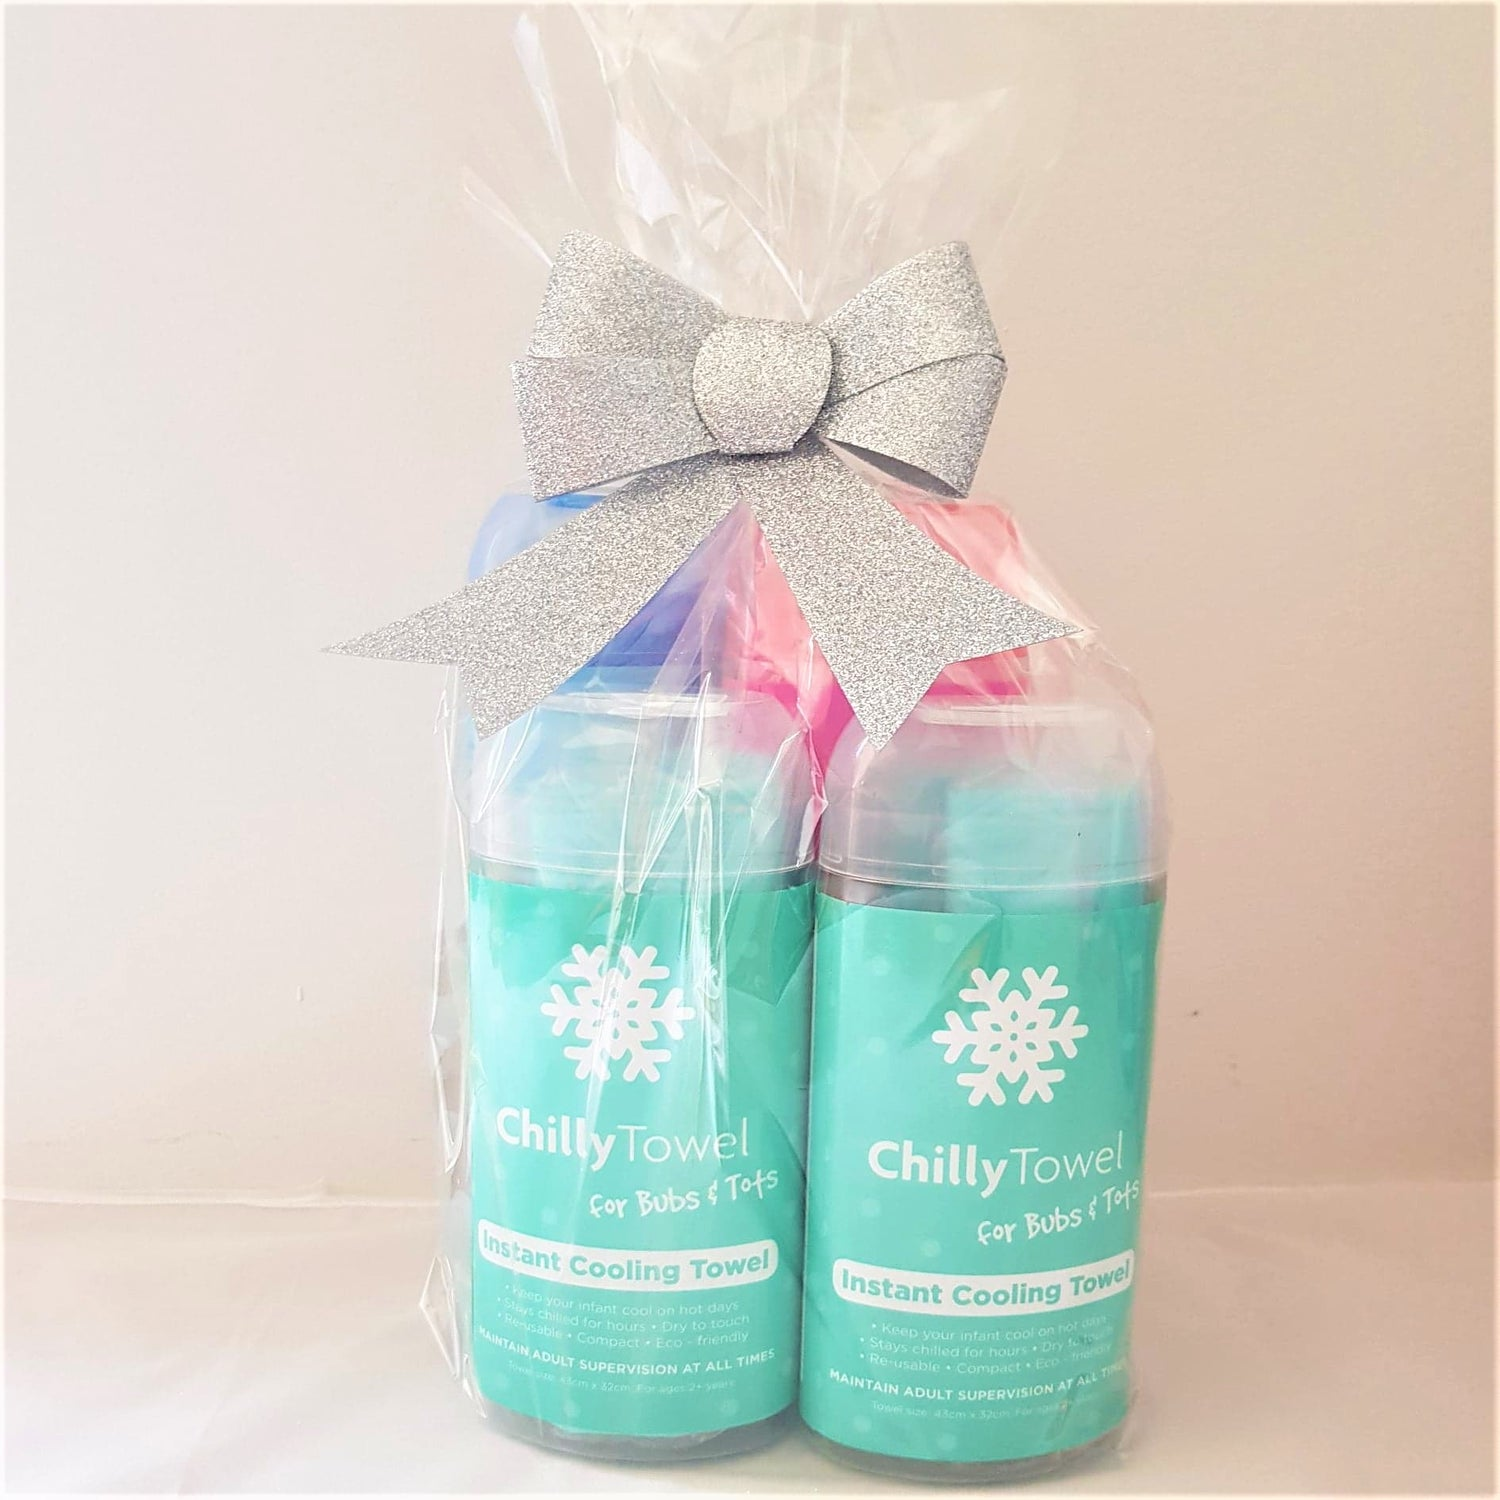 Chilly Towel - Cool Blue, Frosty Pink, Bubs & Tots Duo (Quad Pack)